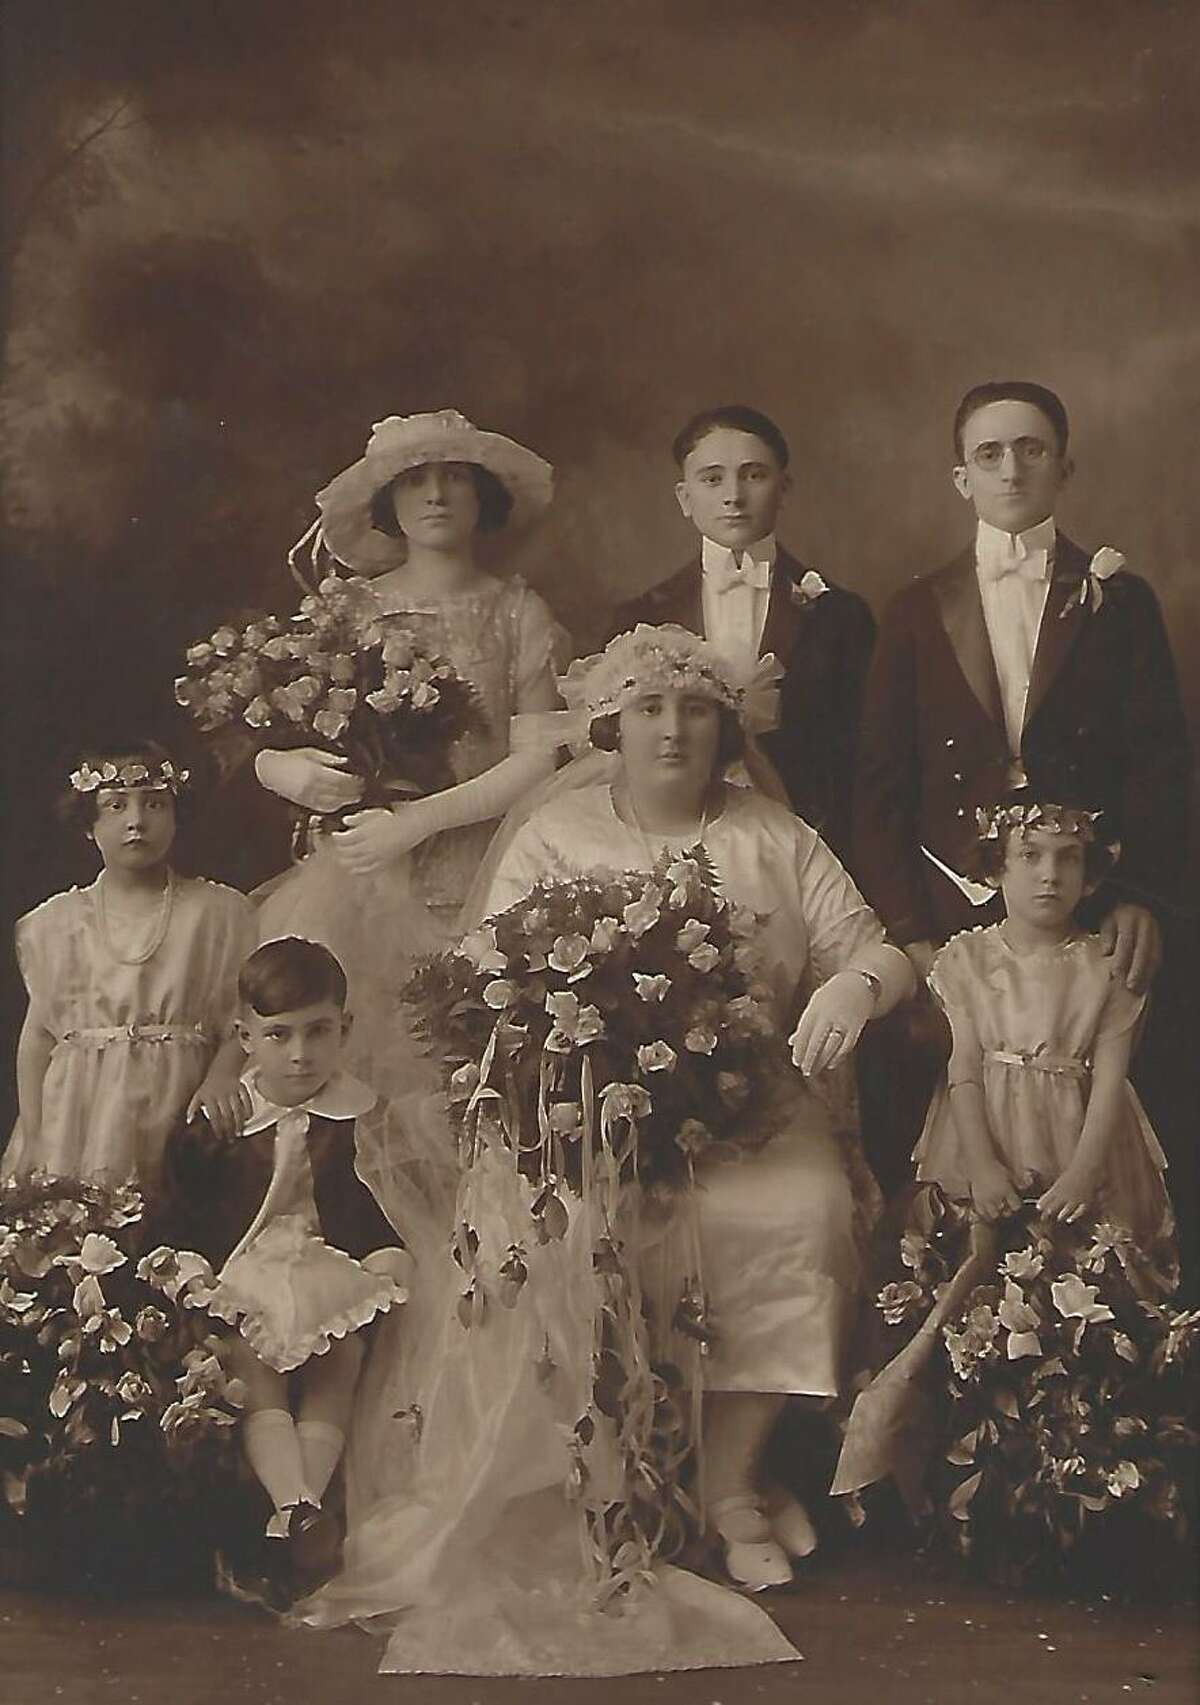 The Bethel Historical Society, along with Occasions Bridal in Bethel, have united to present a vintage and contemporary bridal gown exhibition through Dec. 1.